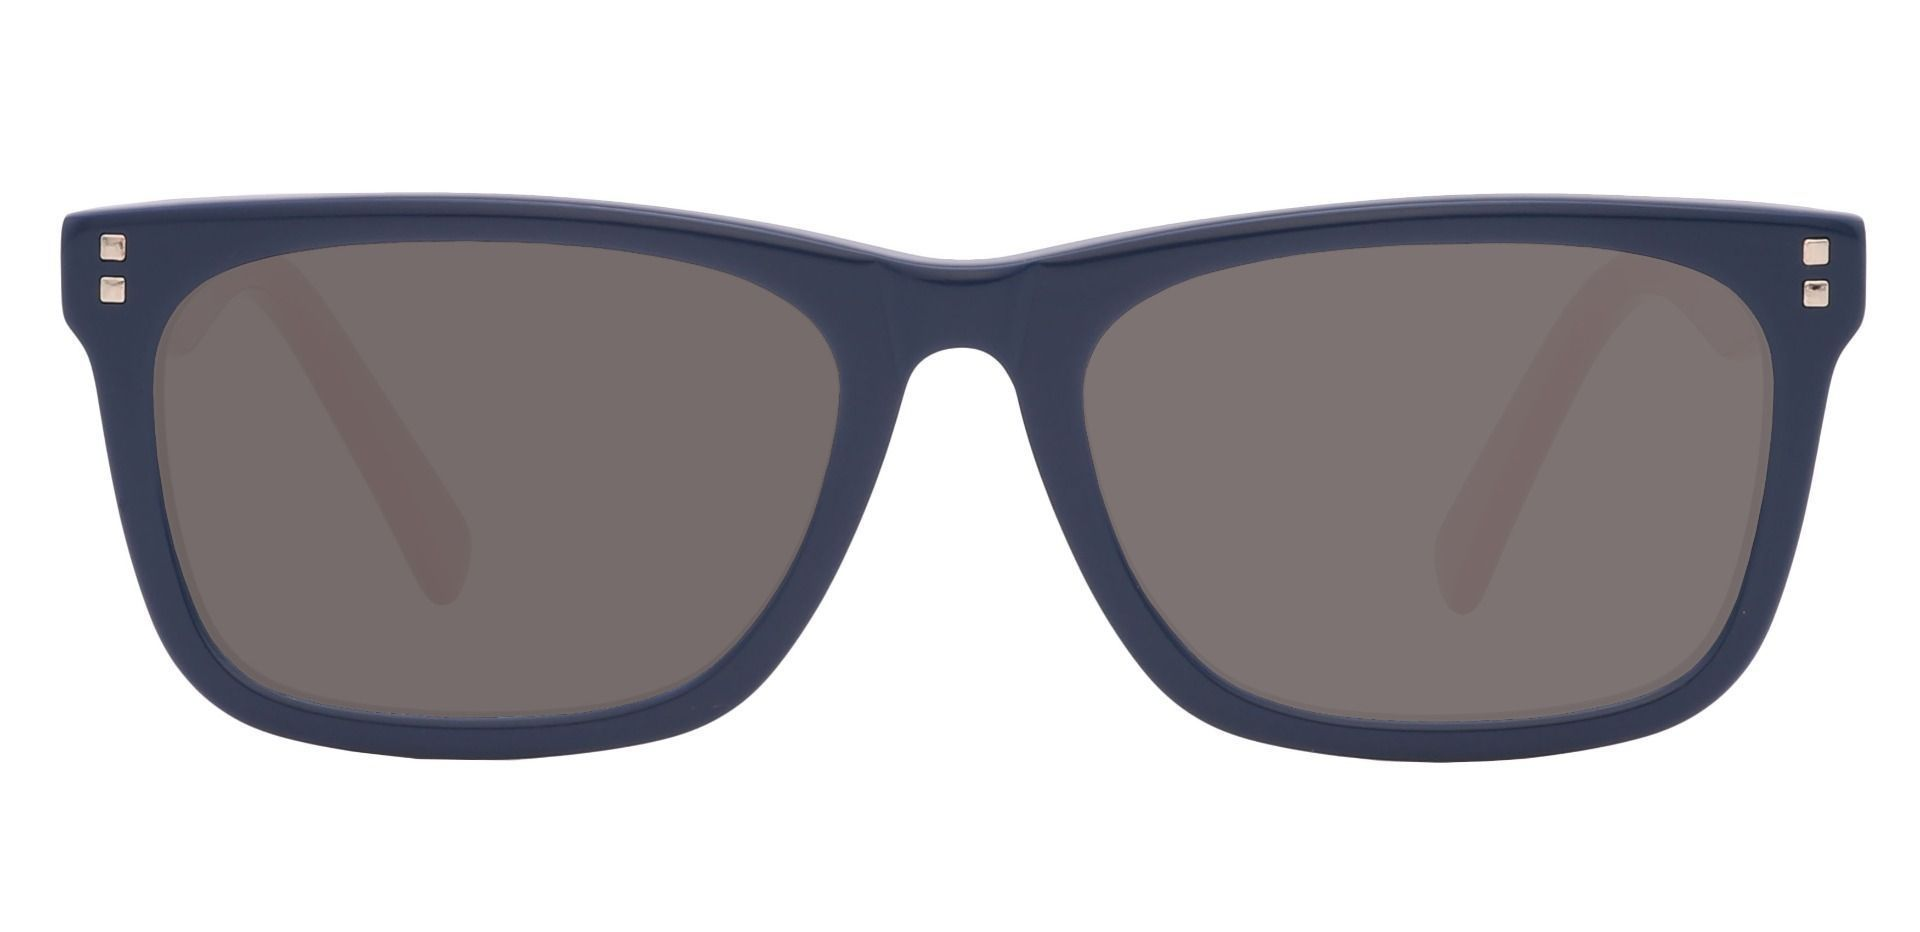 Quincy Rectangle Reading Sunglasses - Blue Frame With Gray Lenses